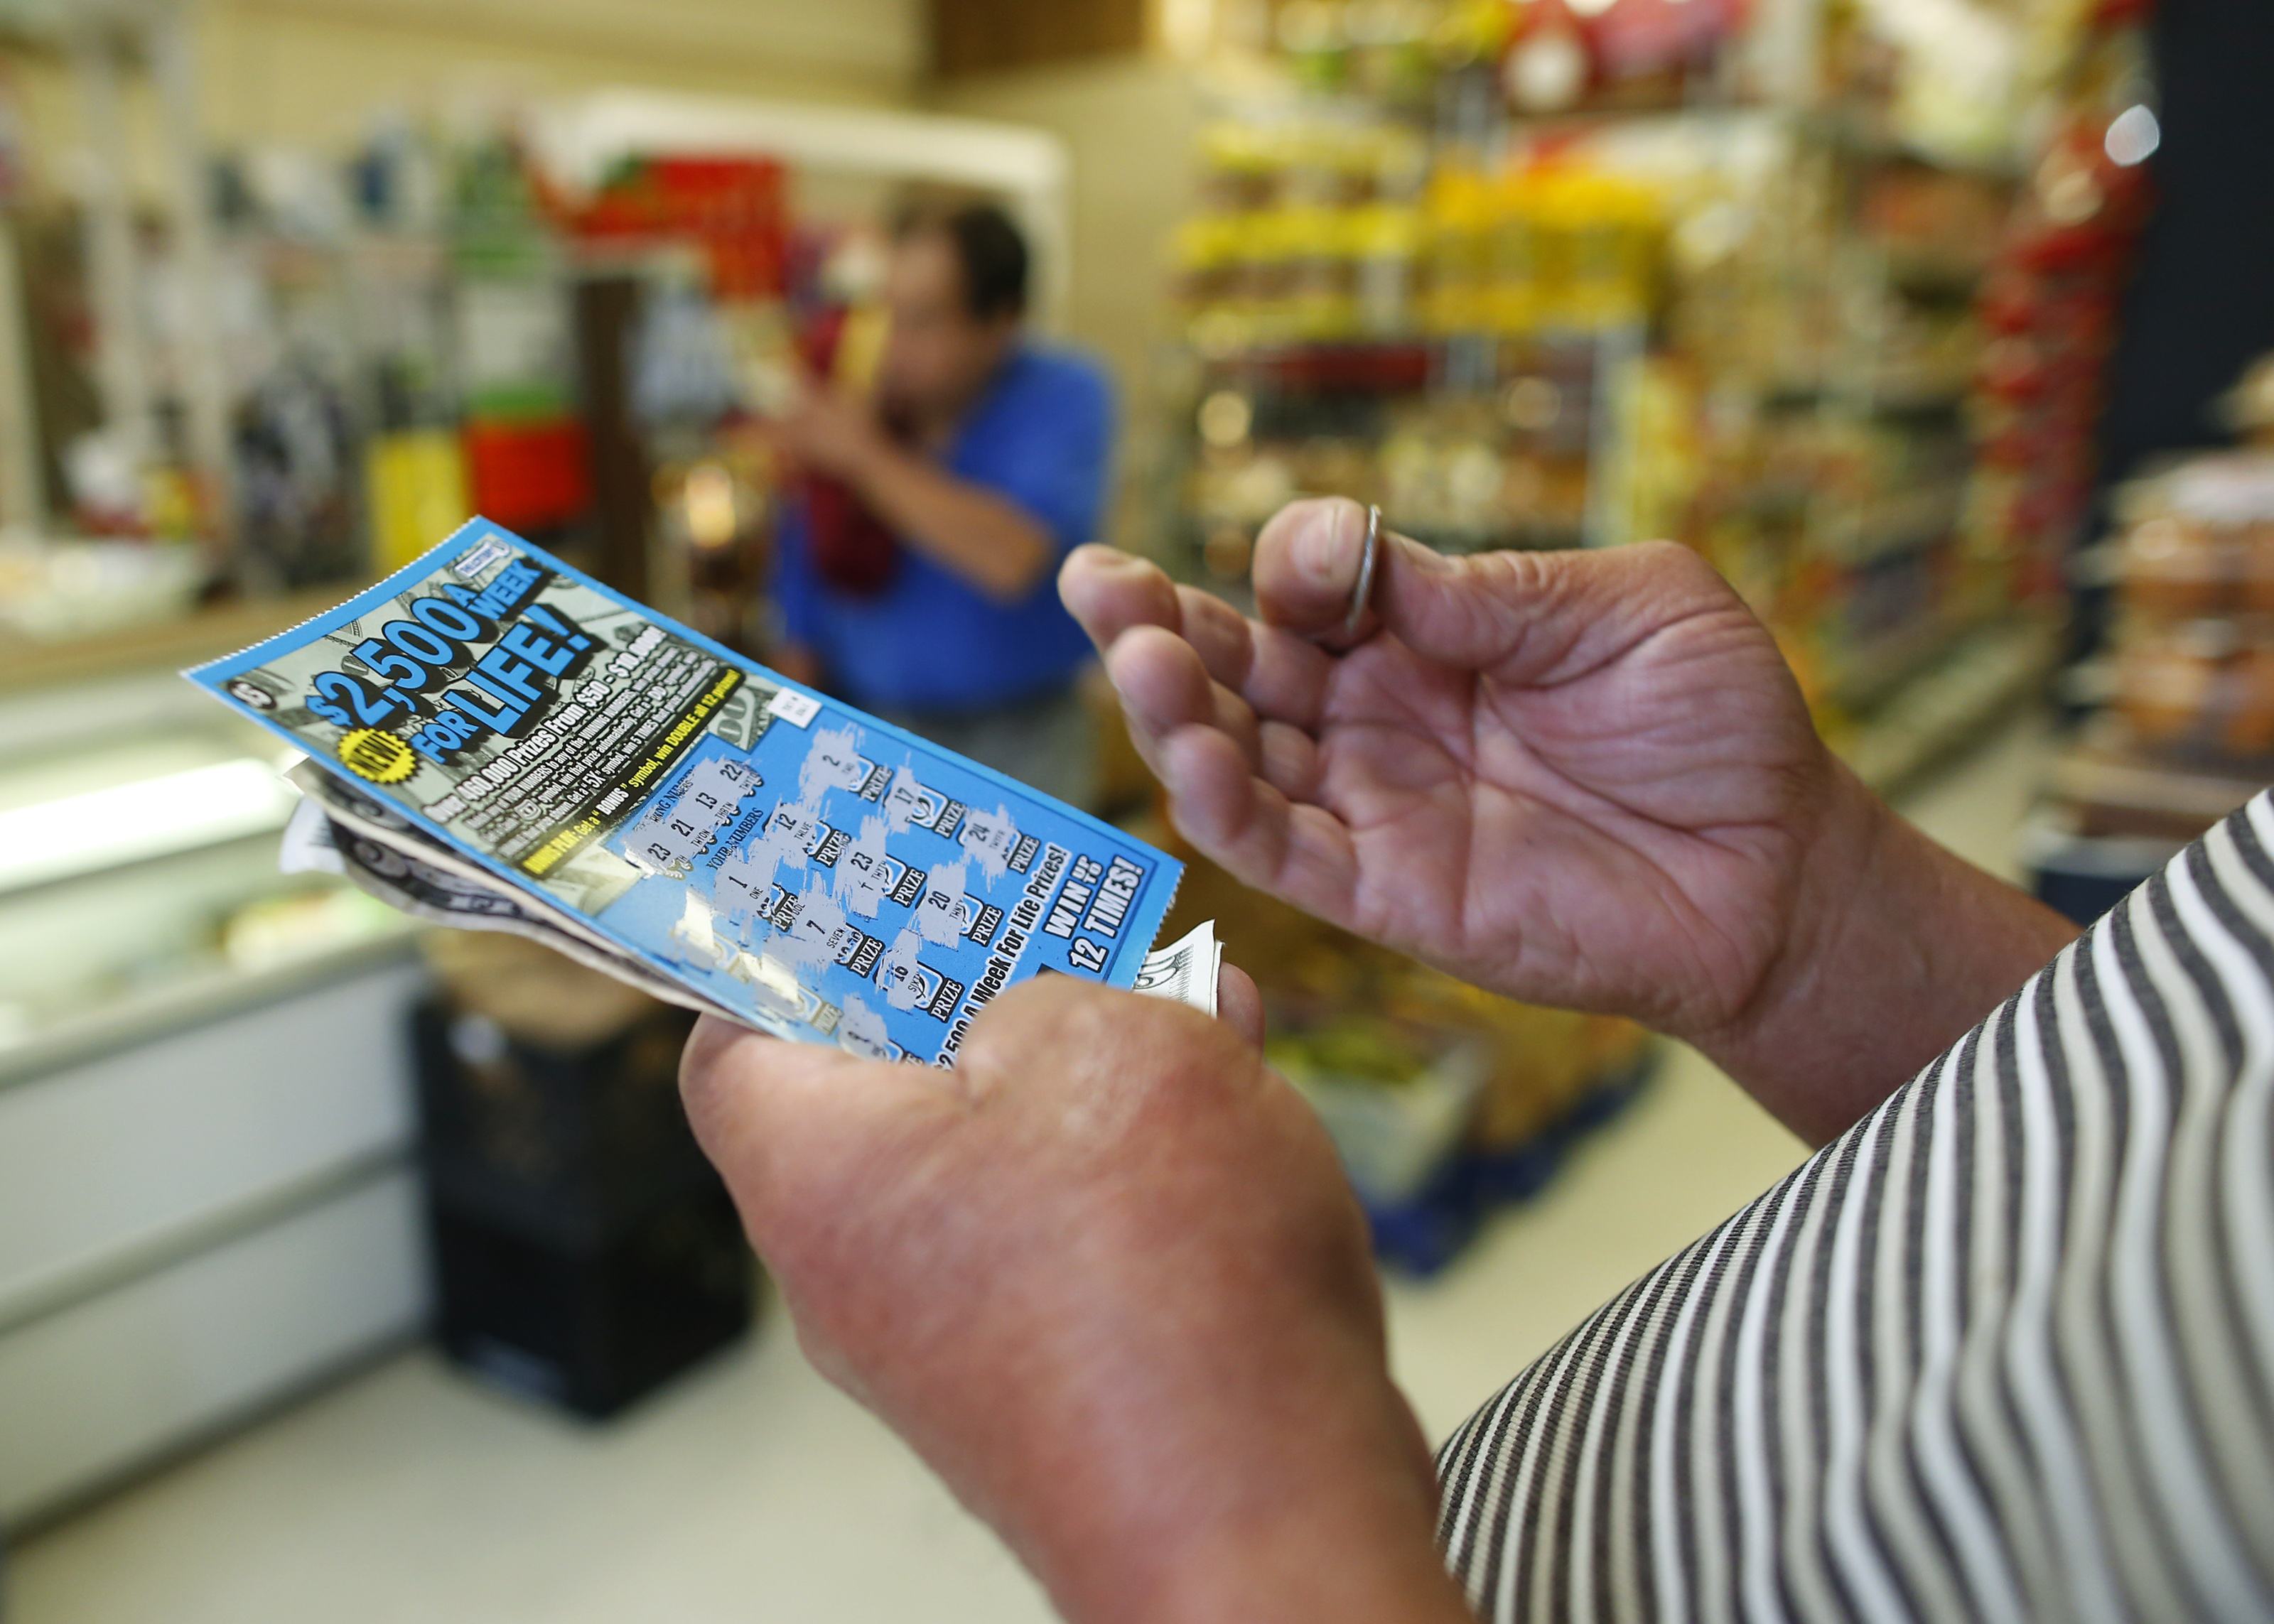 Lawbreakers or just really lucky? Mass  has more repeat lottery